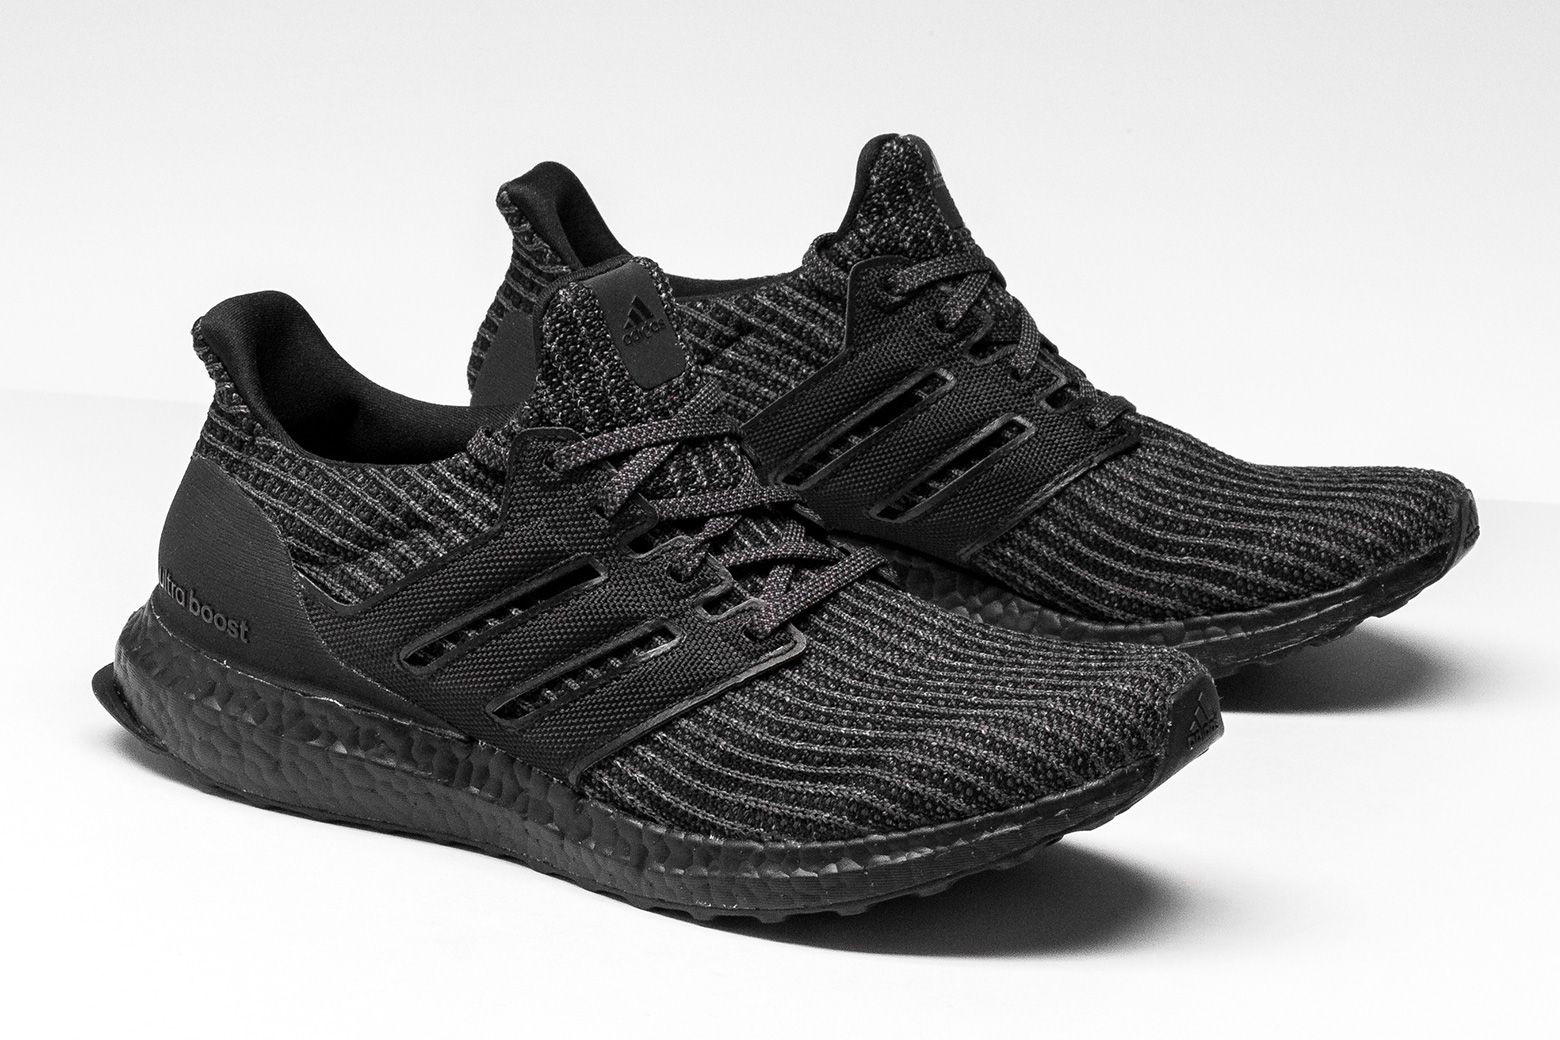 2b77ffaf67c When it comes to the Adidas Ultra Boost 4.0